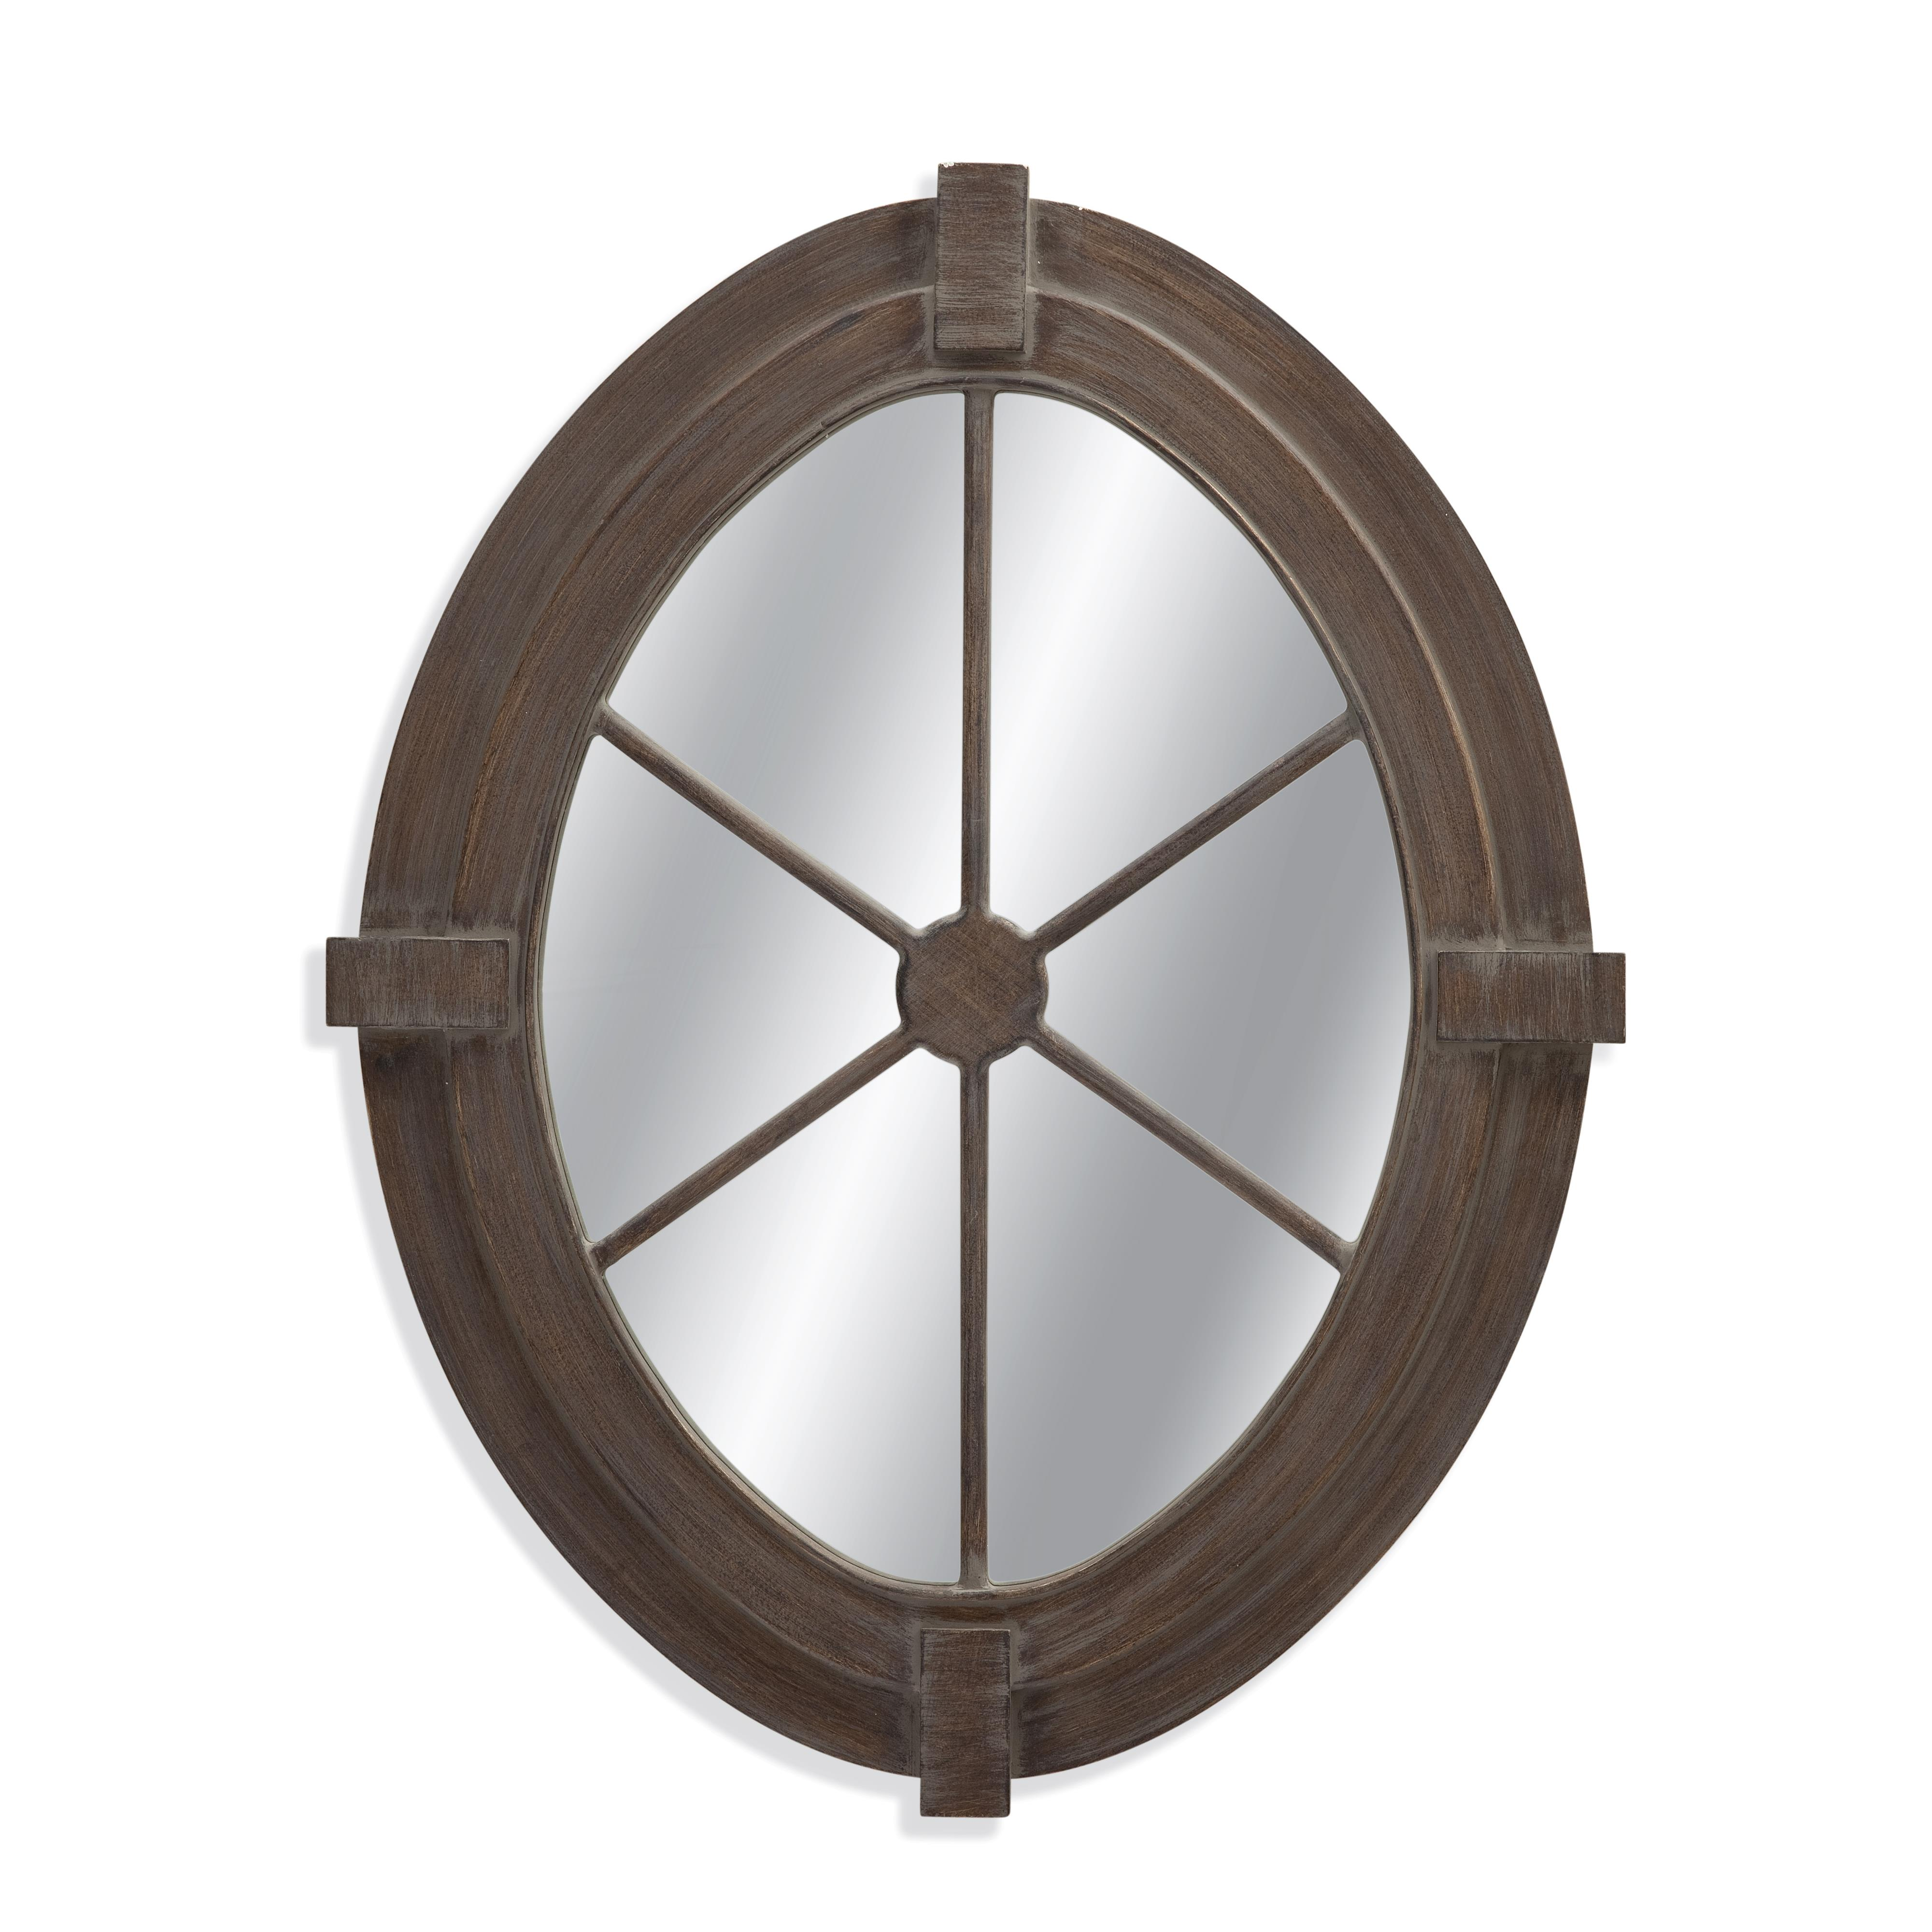 Folly Wall Mirror